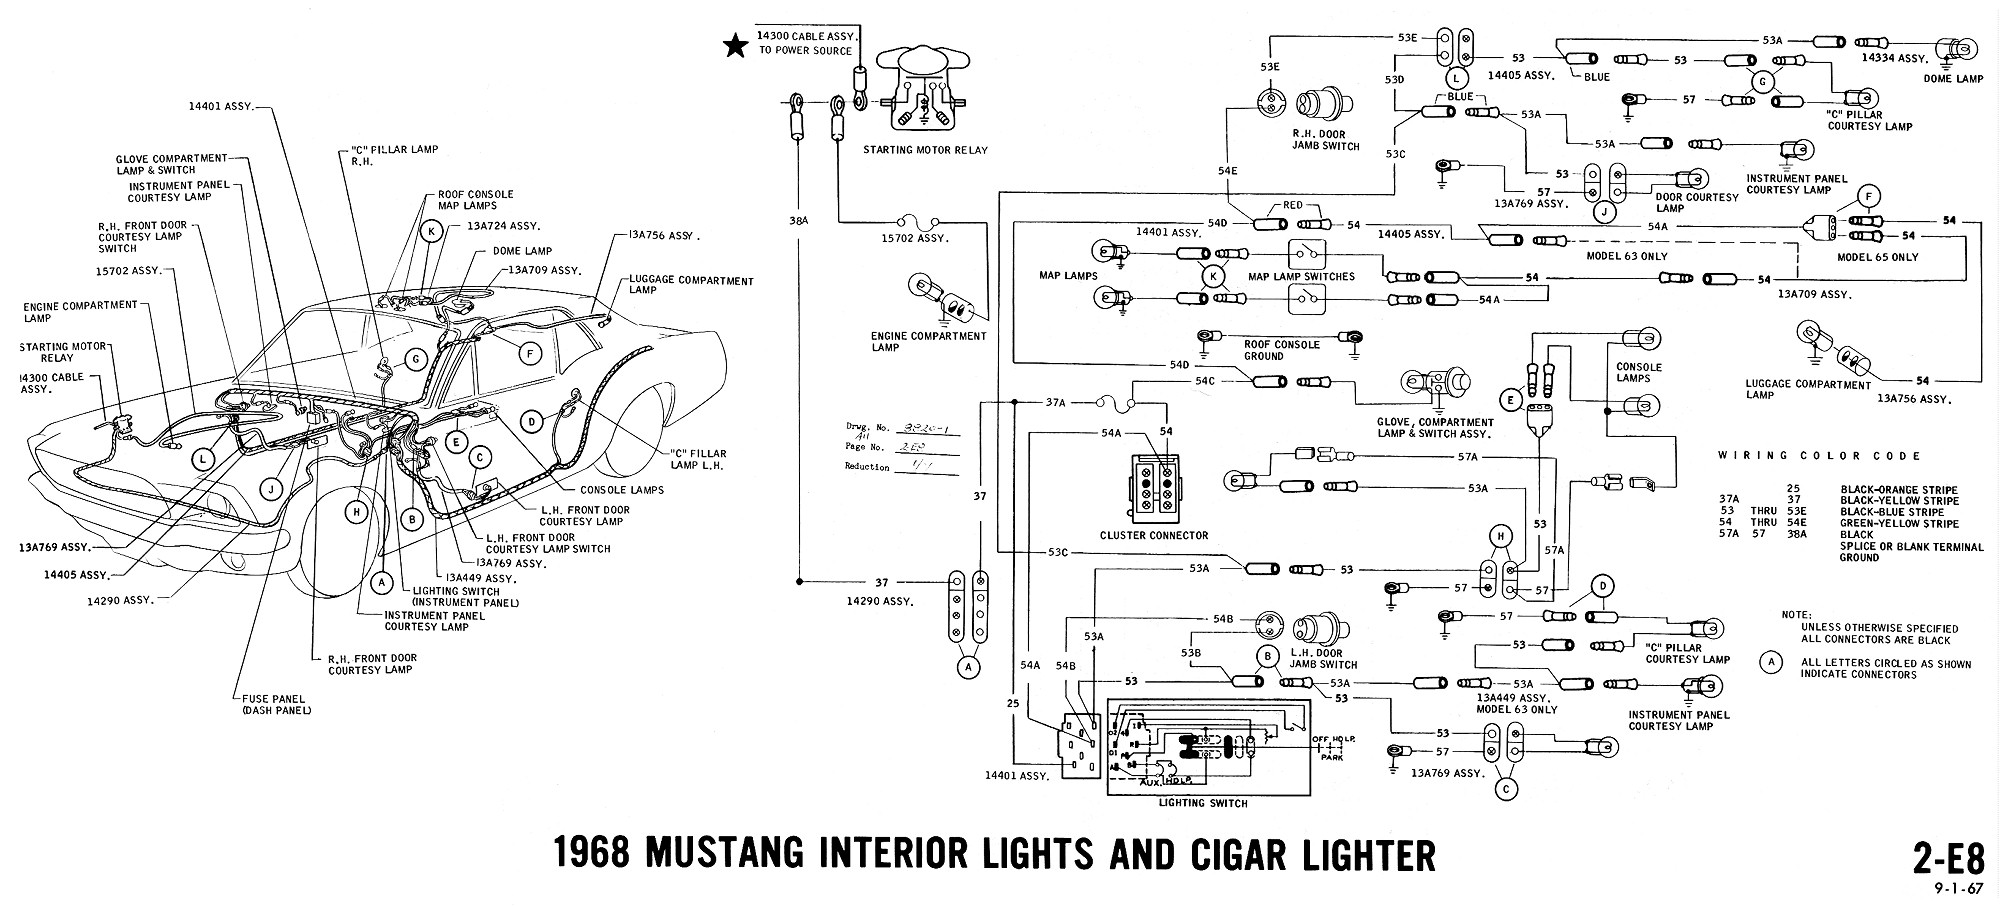 1968 Mustang Wiring Diagrams | Evolving SoftwareEvolving Software